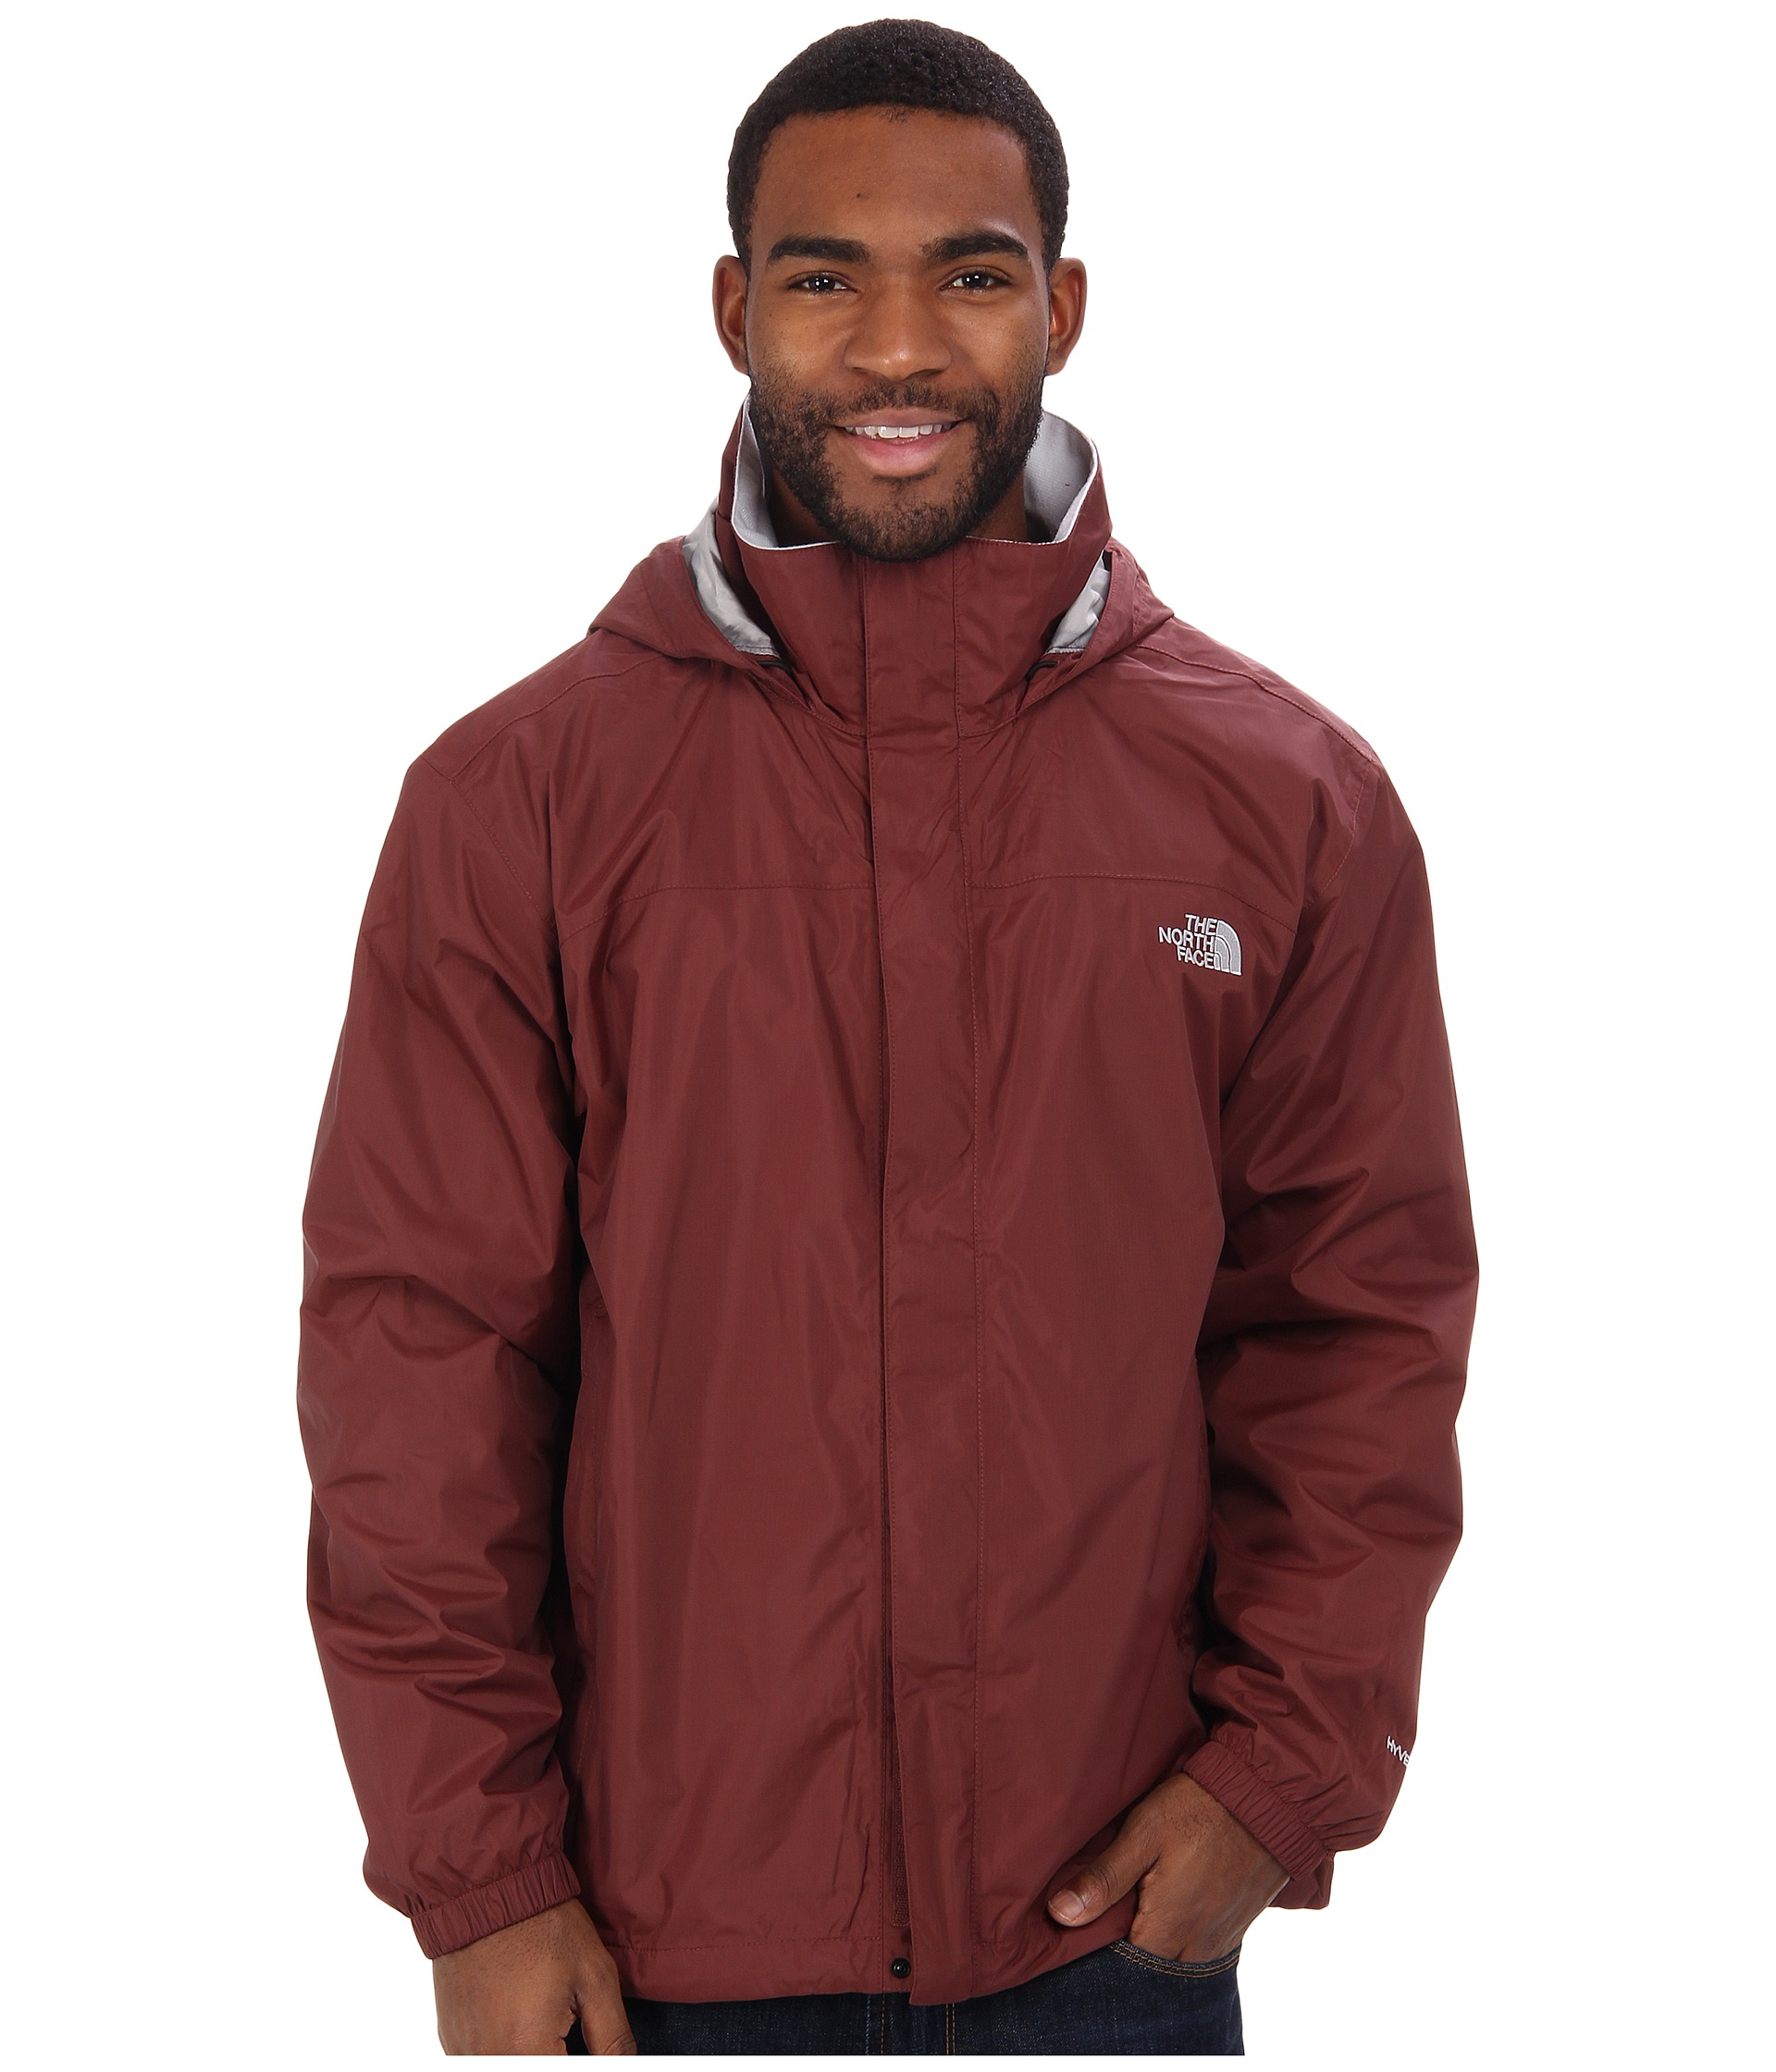 6pm The North Face Up to 60% Off Sale